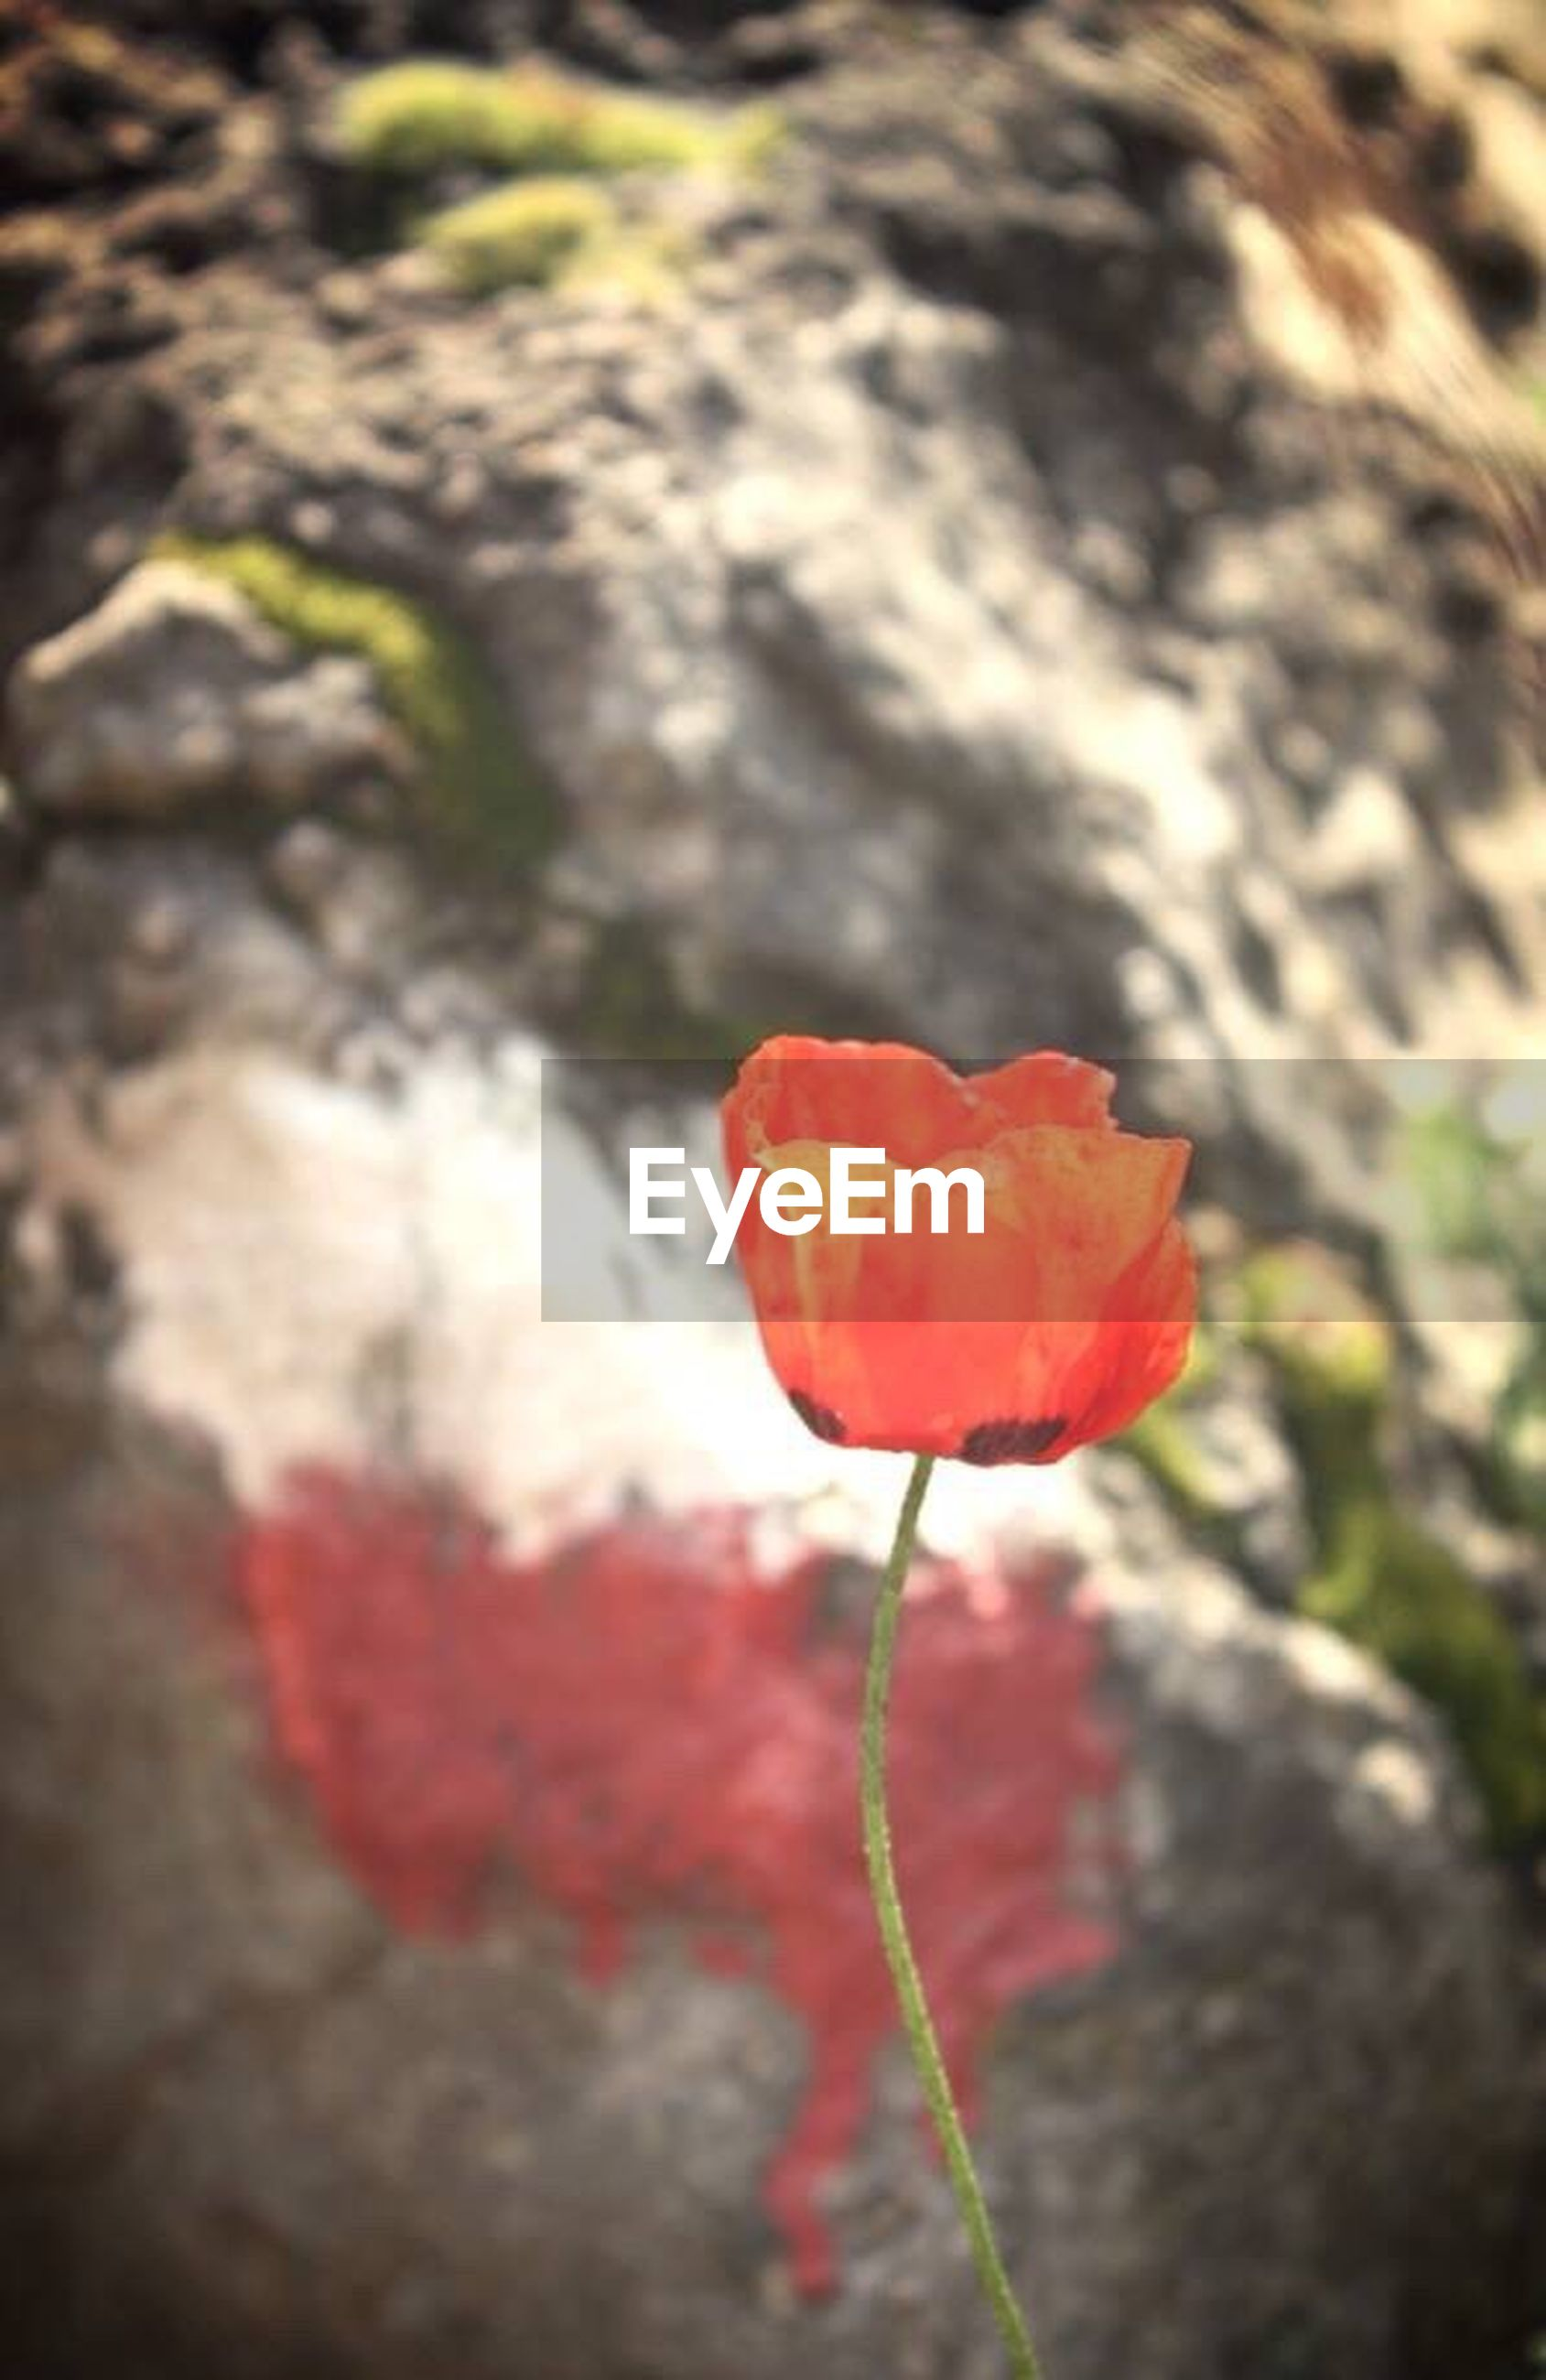 flower, fragility, petal, red, freshness, flower head, close-up, growth, beauty in nature, focus on foreground, poppy, nature, in bloom, springtime, blossom, vibrant color, day, botany, blooming, single flower, outdoors, bloom, tranquility, garden, no people, red color, growing